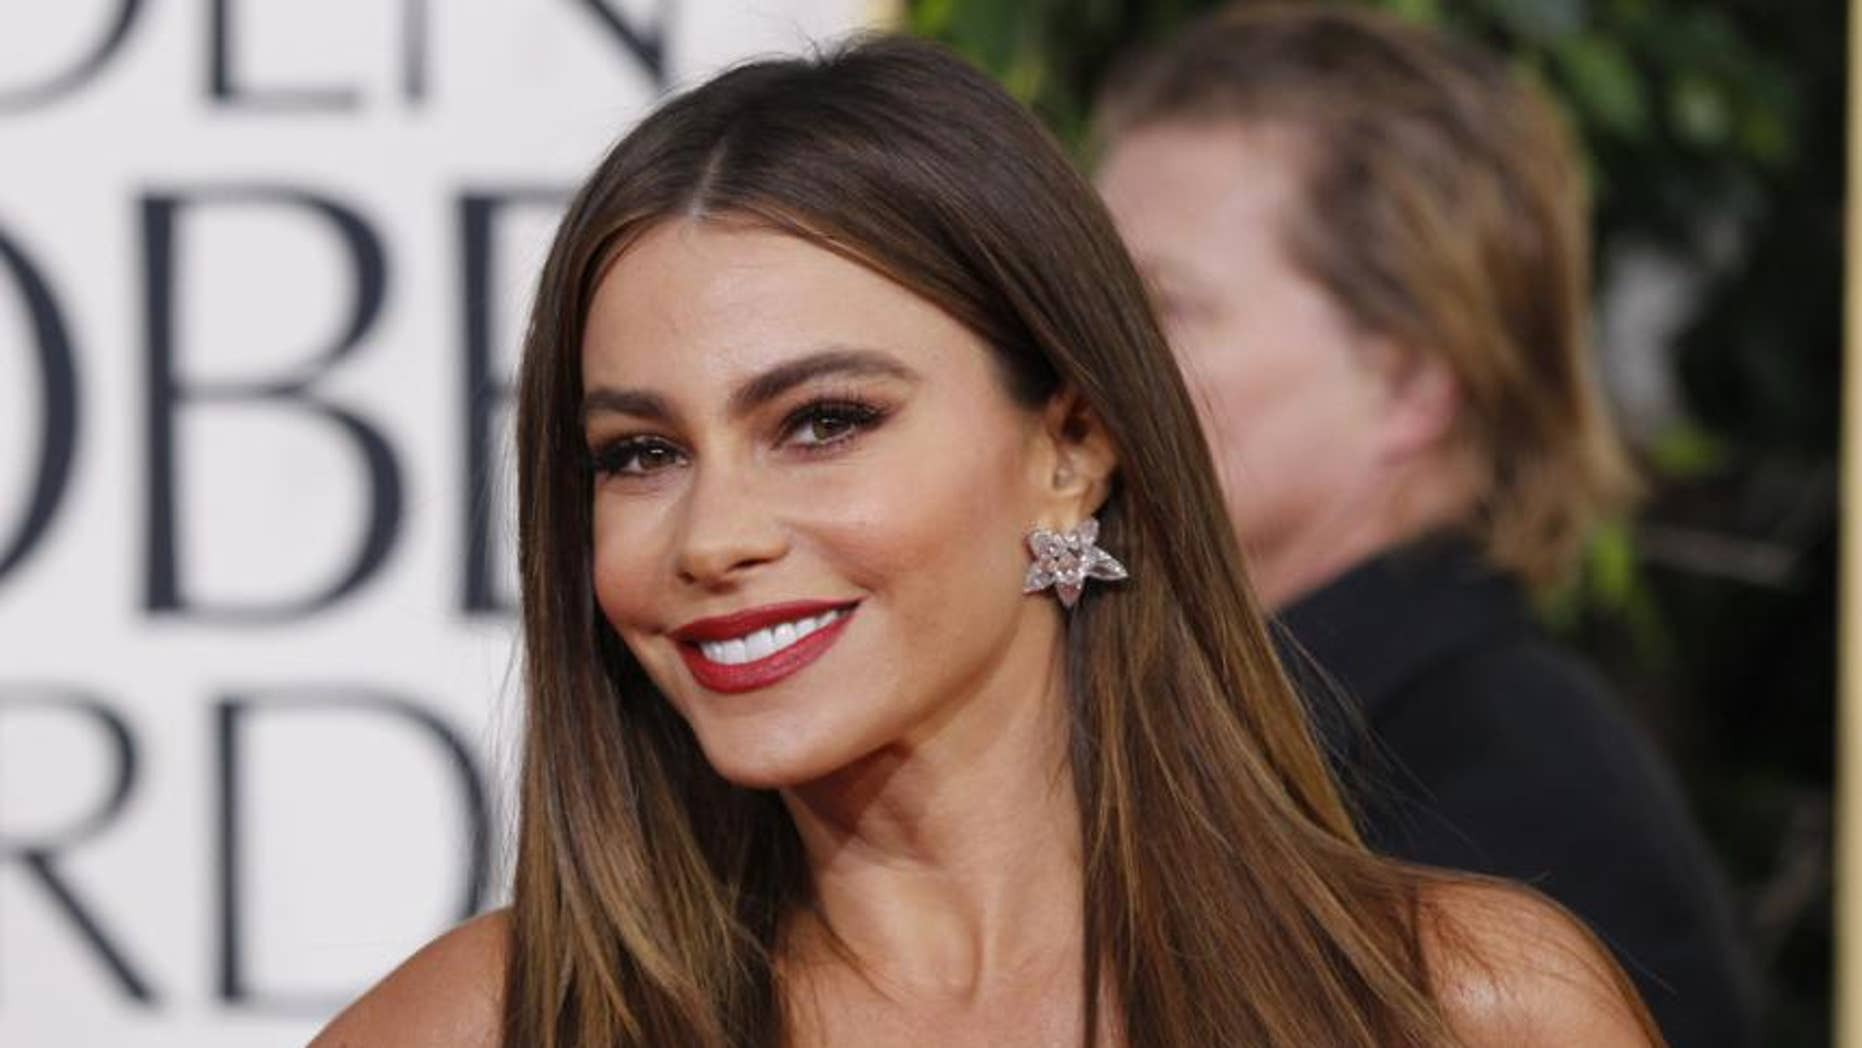 Sofia Vergara shared a throwback photo of herself in a bikini.